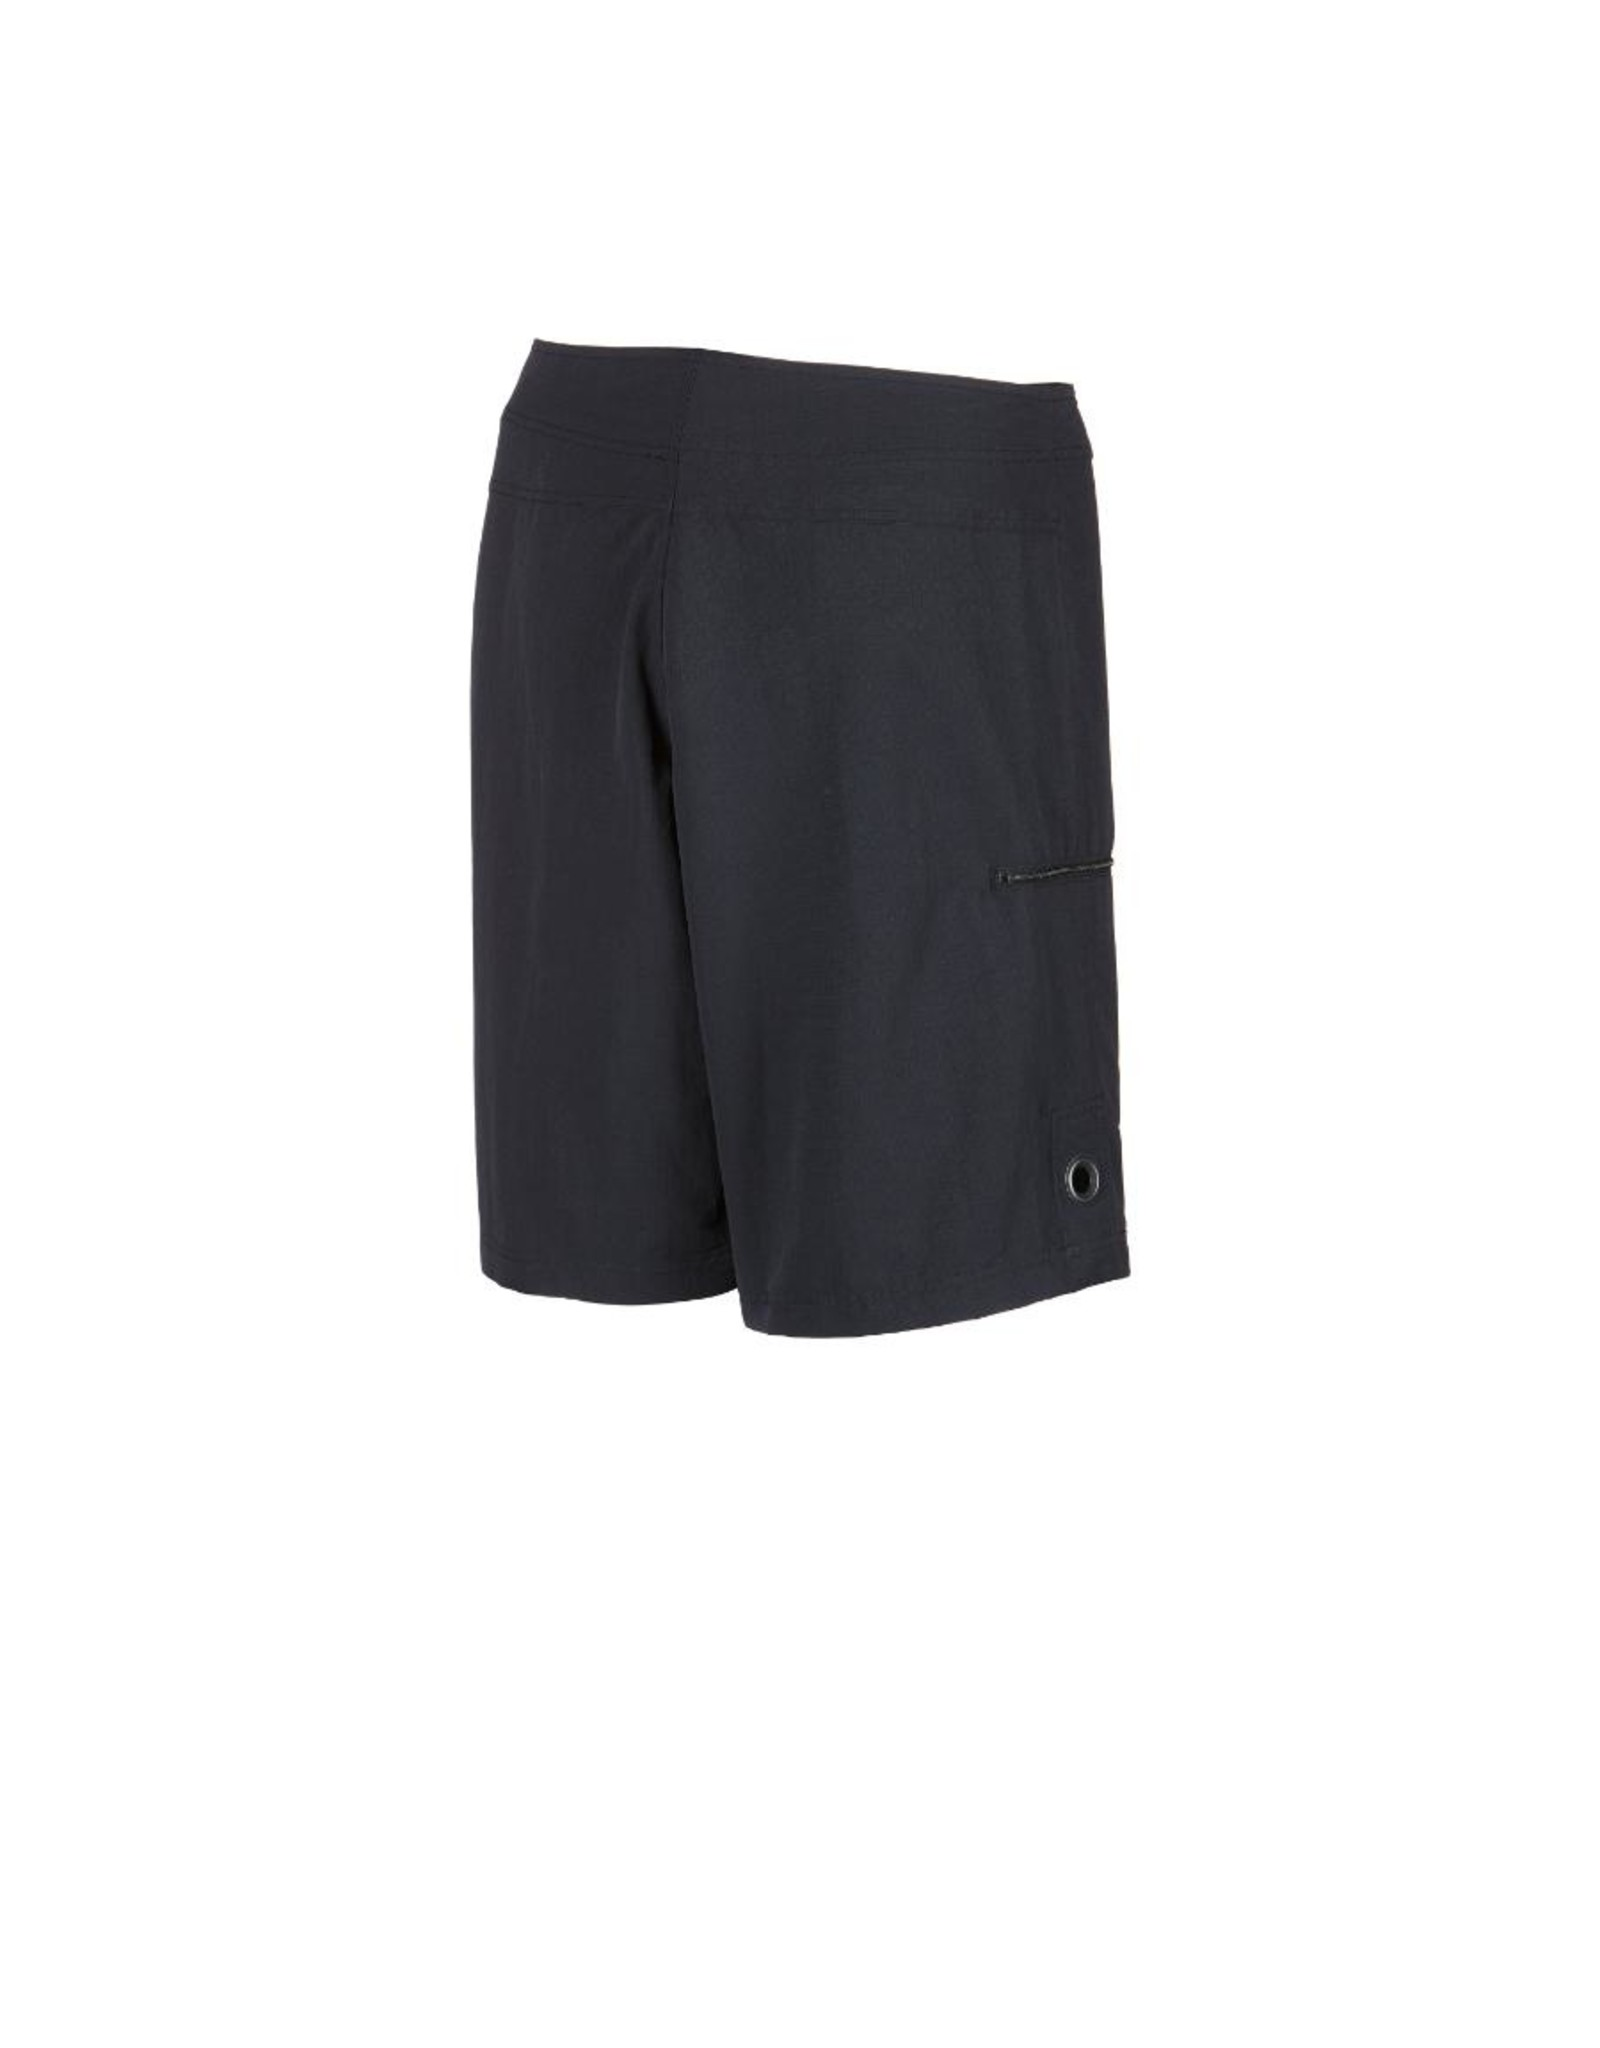 Immersion Research IR Mens Guide Shorts